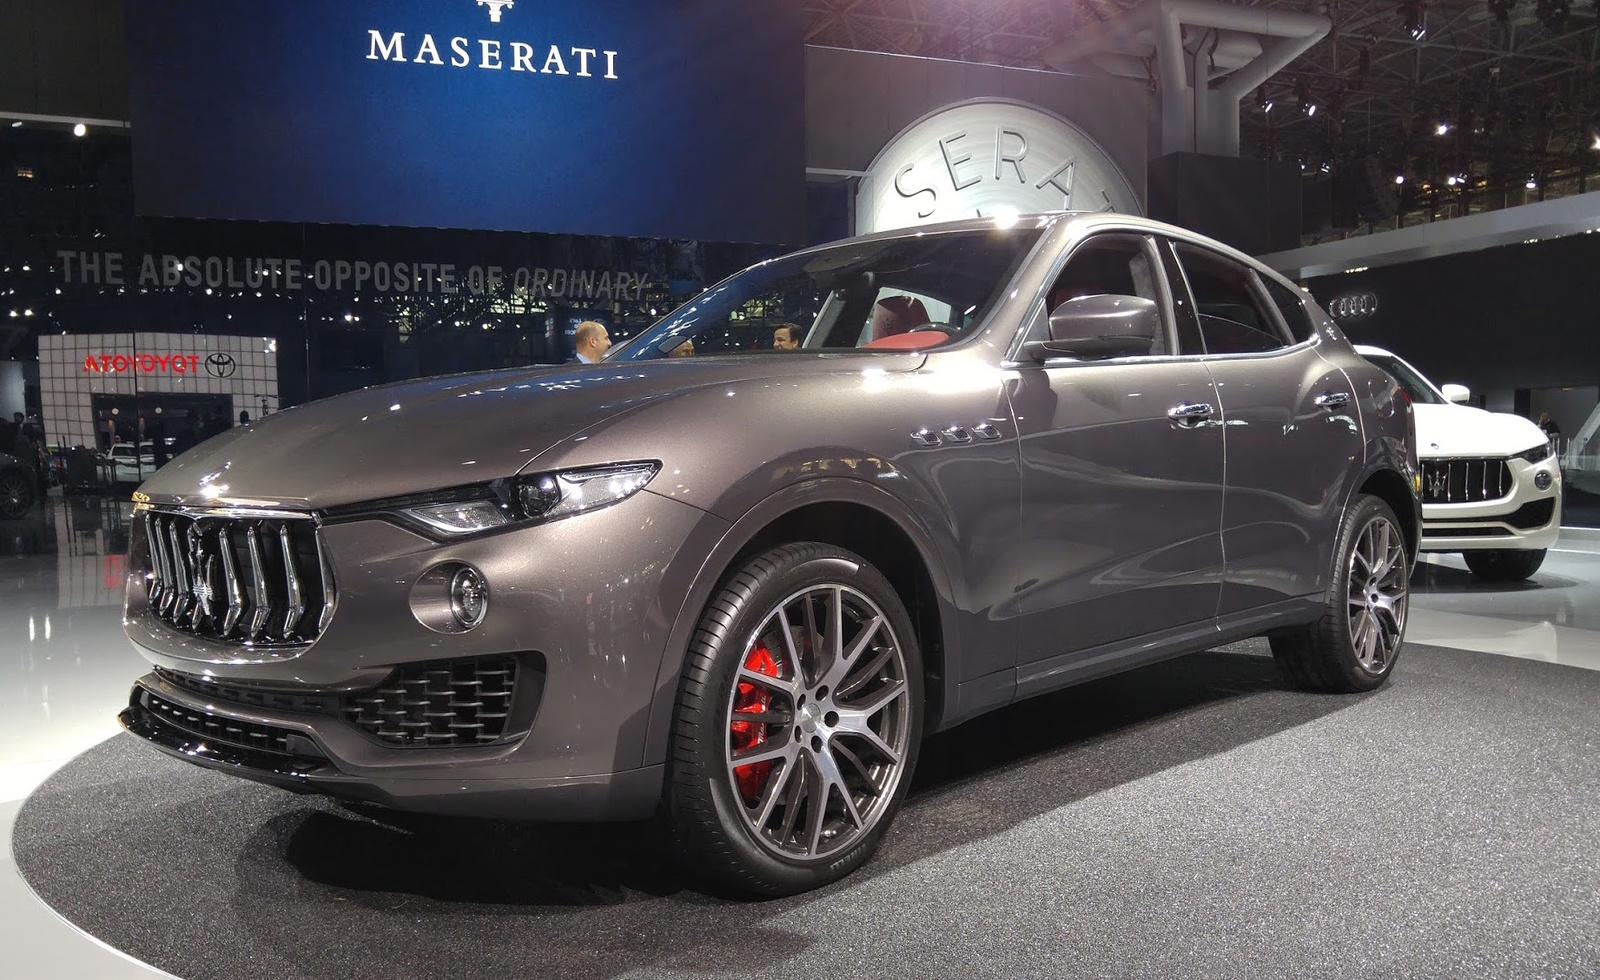 From the Levantes debut at the 2016 New York International Auto Show